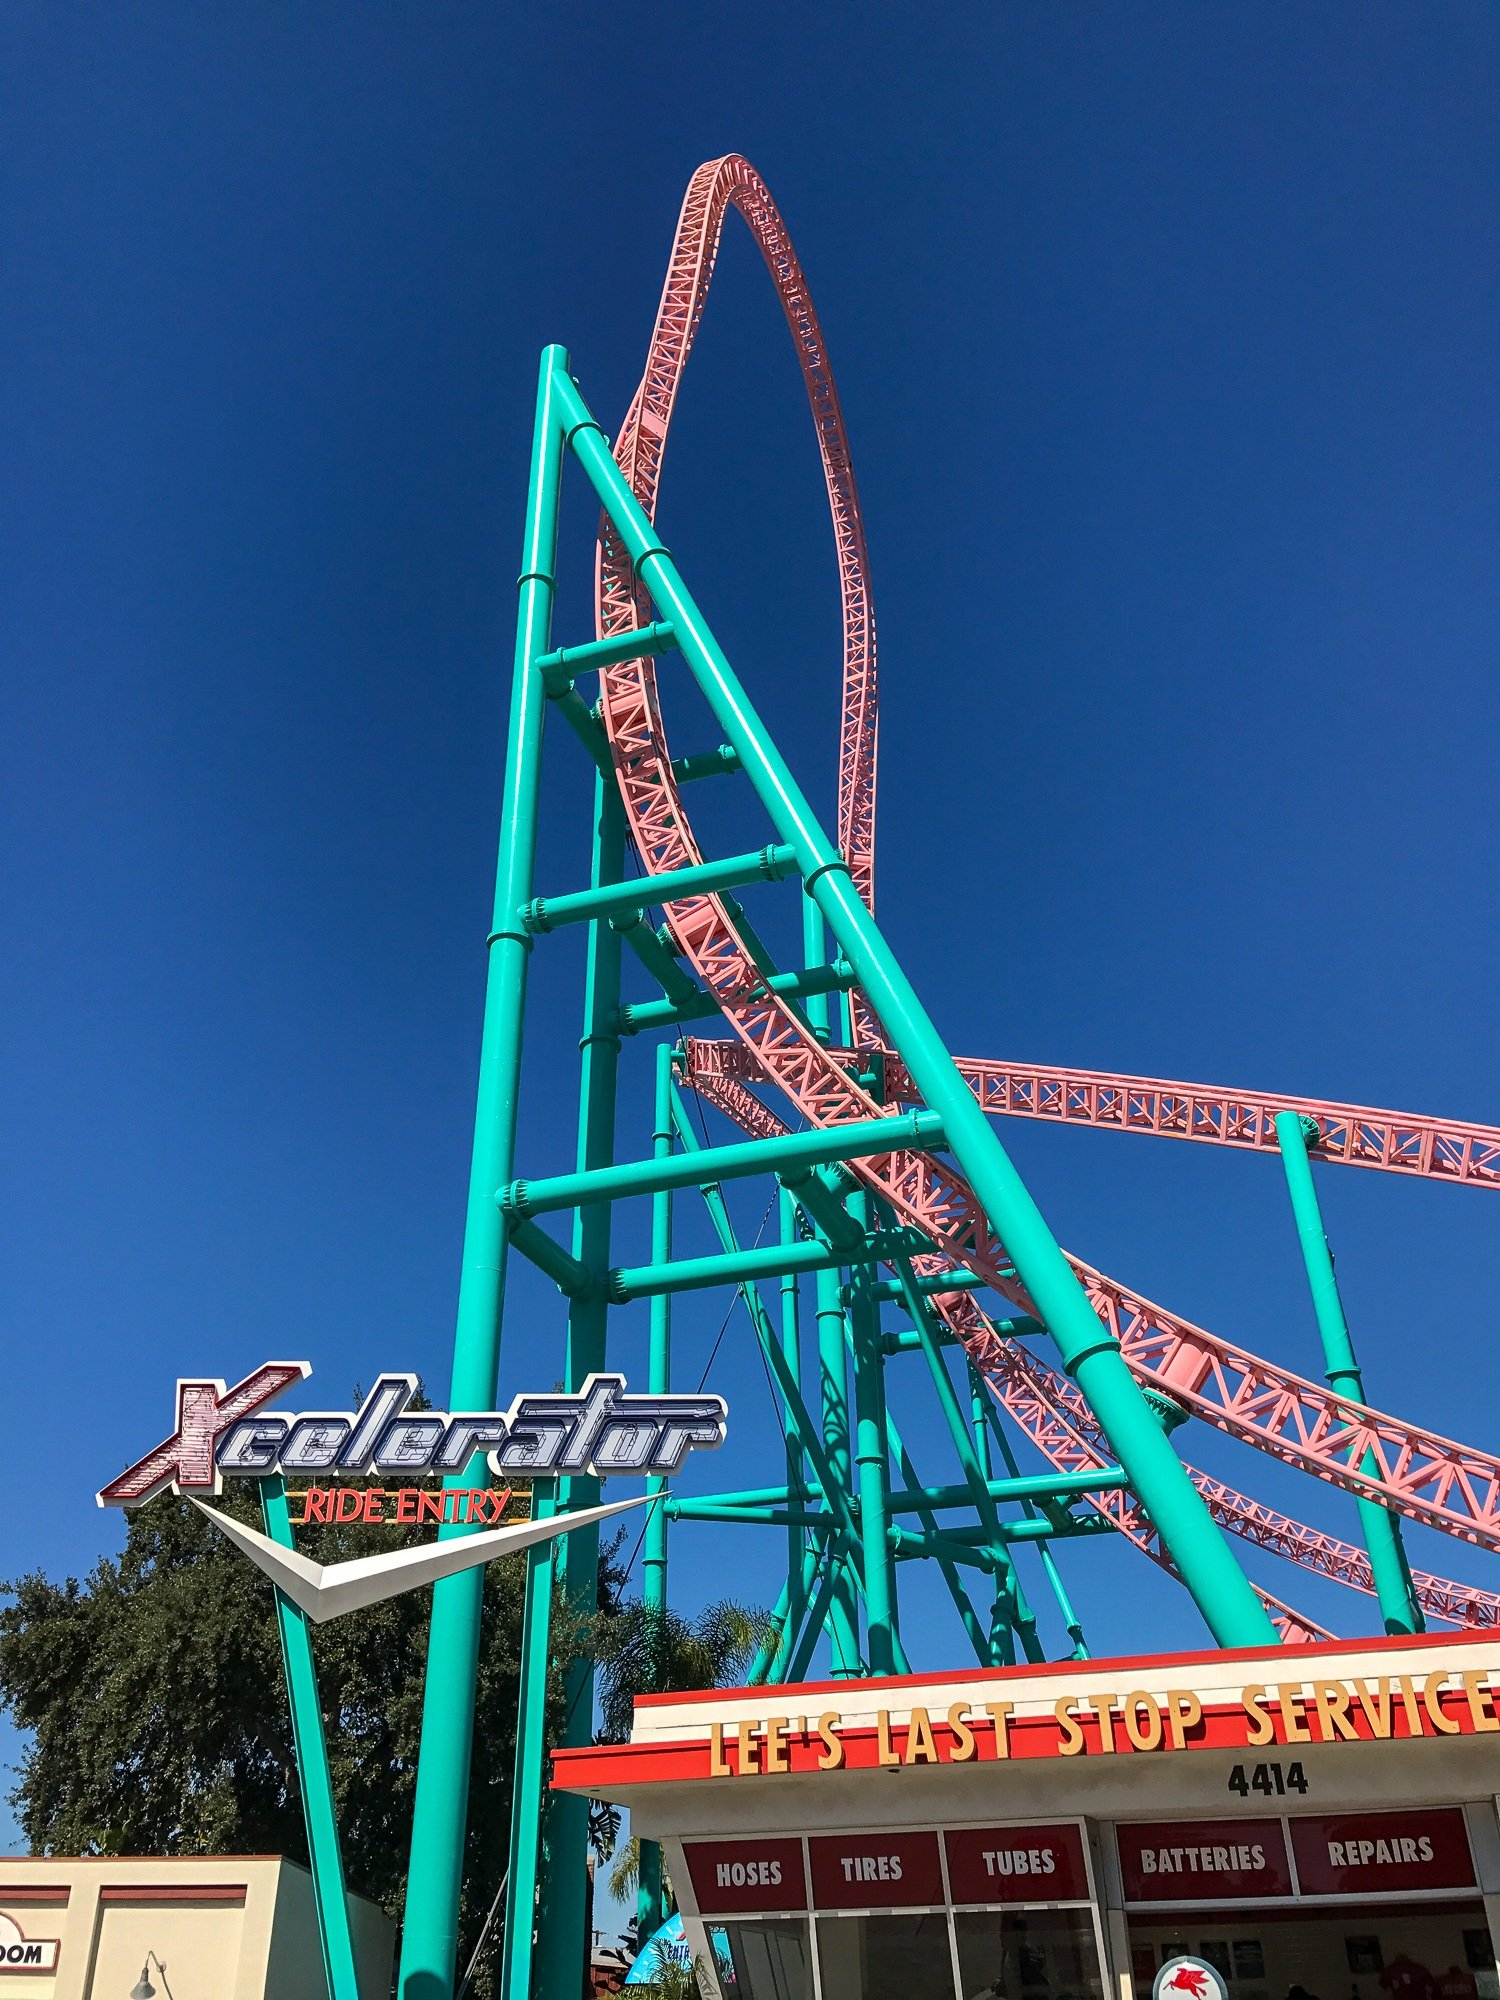 Xcelerator, one of the fastest rides at Knott's Berry Farm